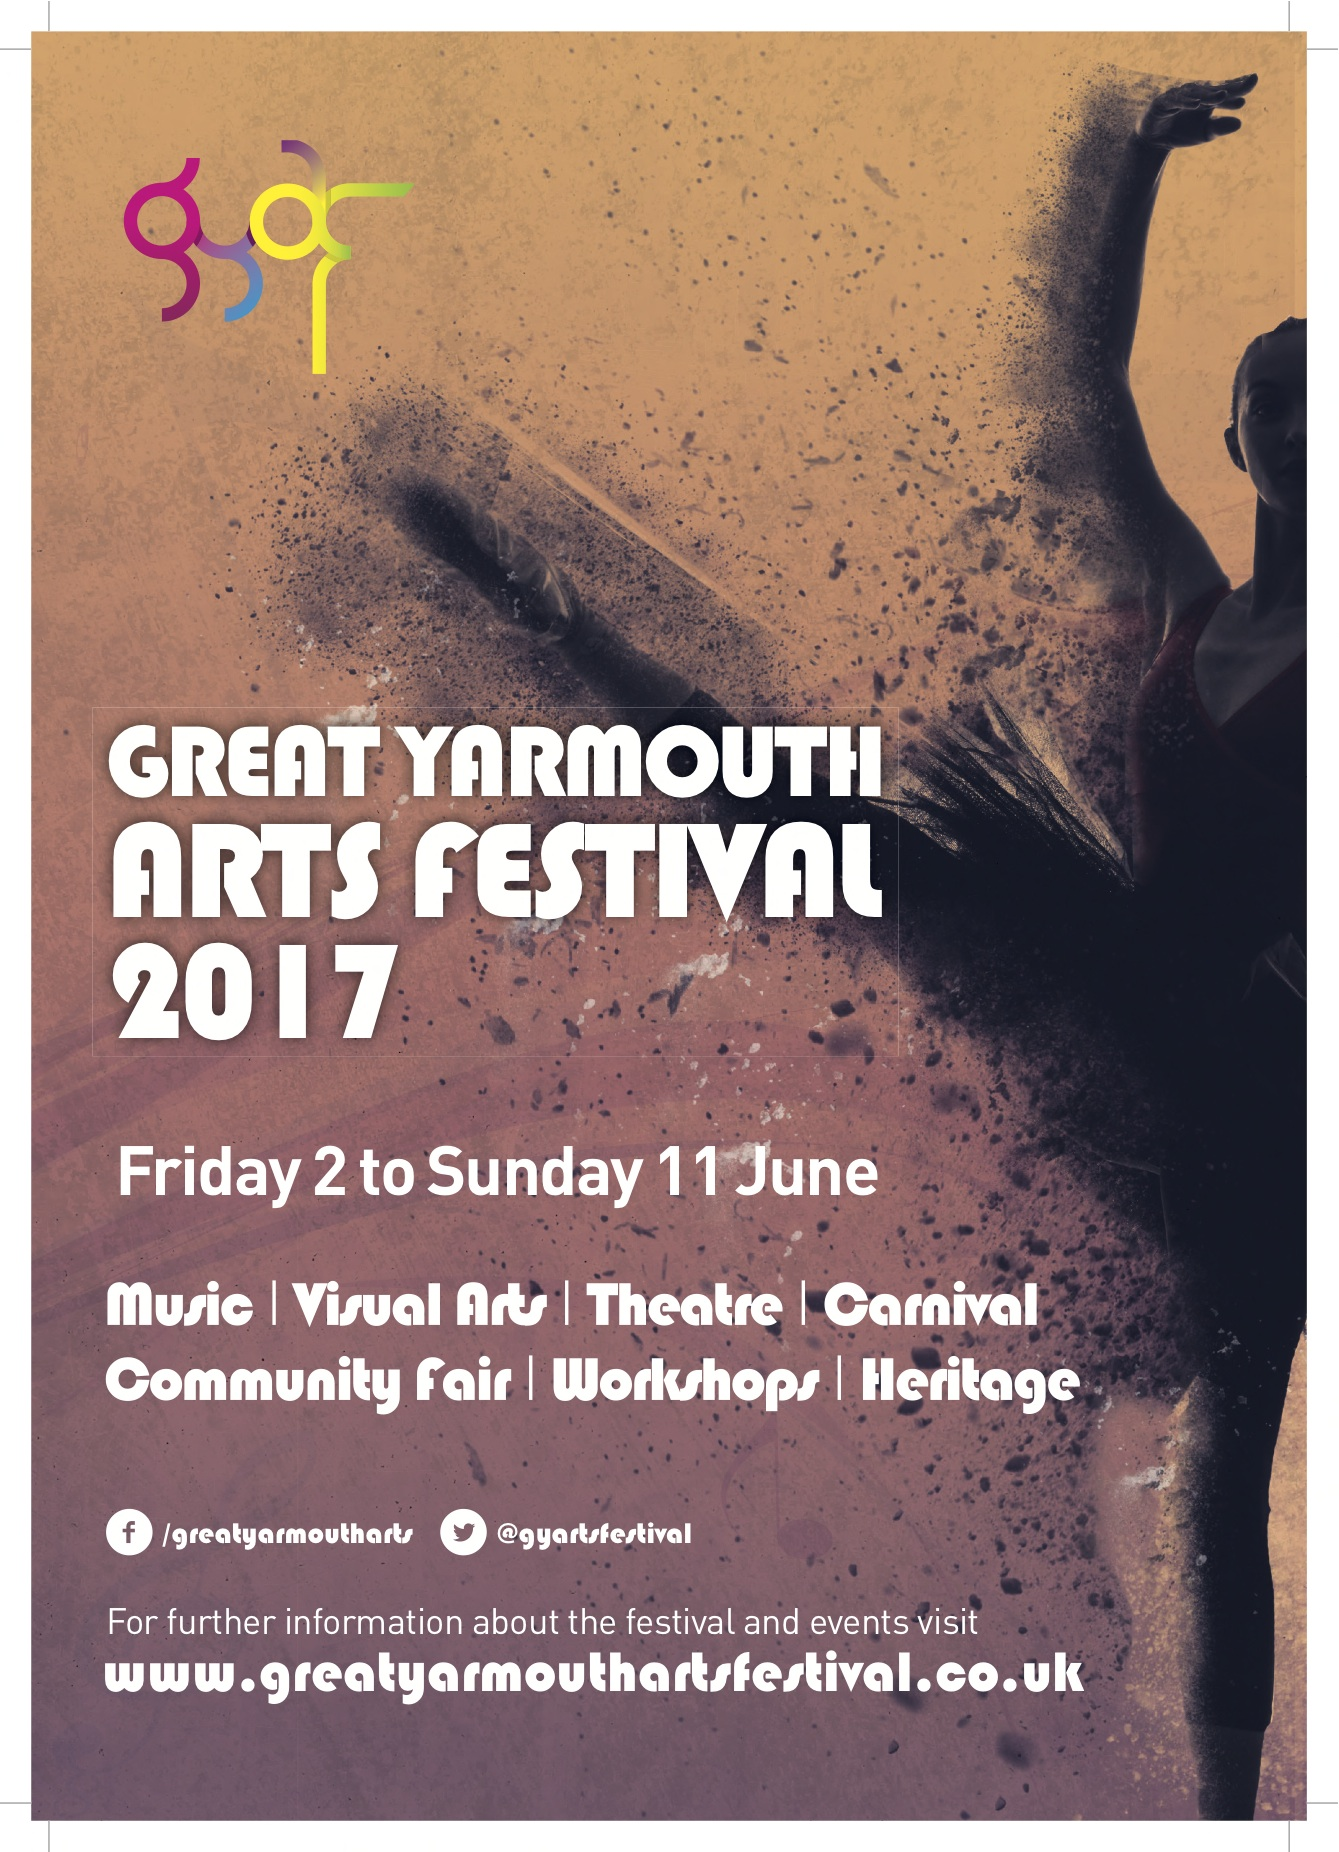 Gt Yarmouth Arts Festival 2017 Poster